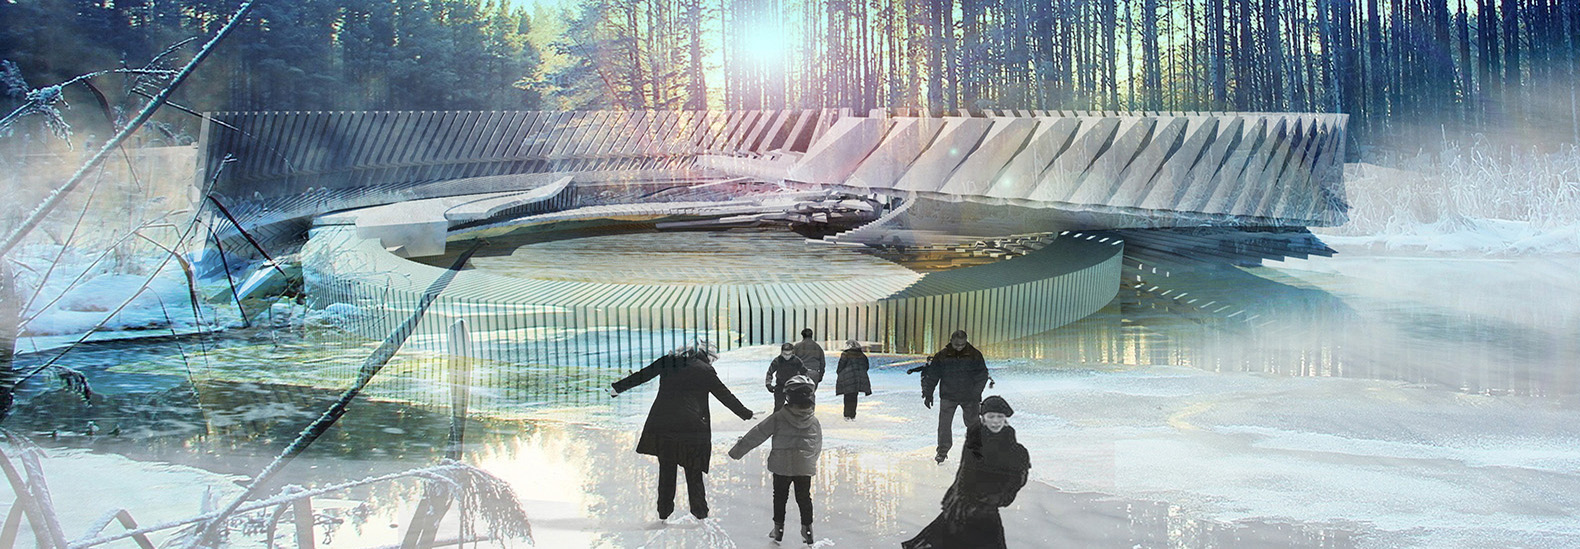 russian ice skating rink doubles as a solar powered outdoor cinema